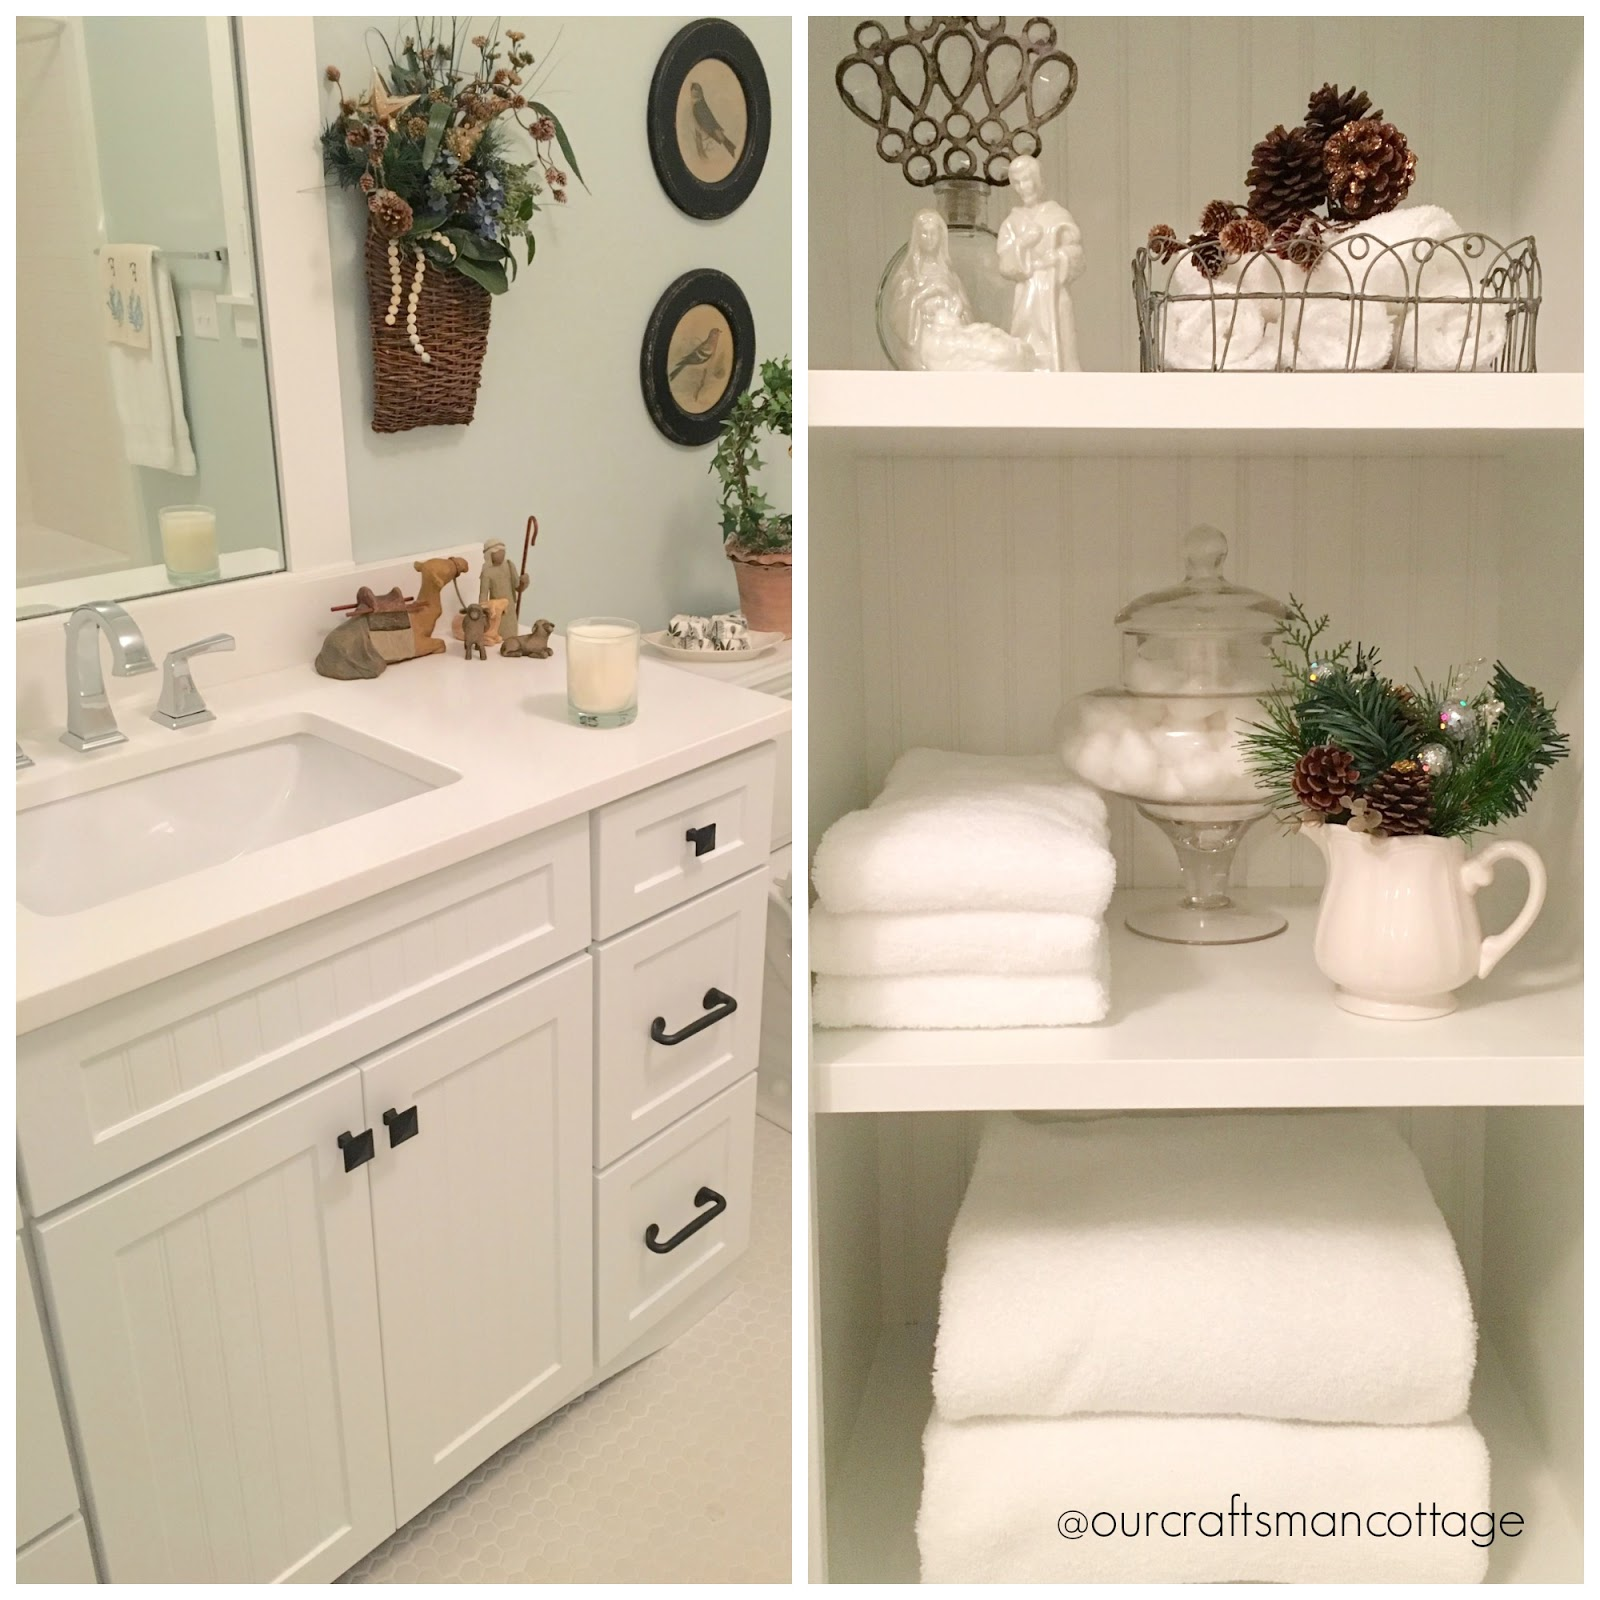 First Friday Home Tour #10 Featuring Our Craftsman Cottage   Poofing ...